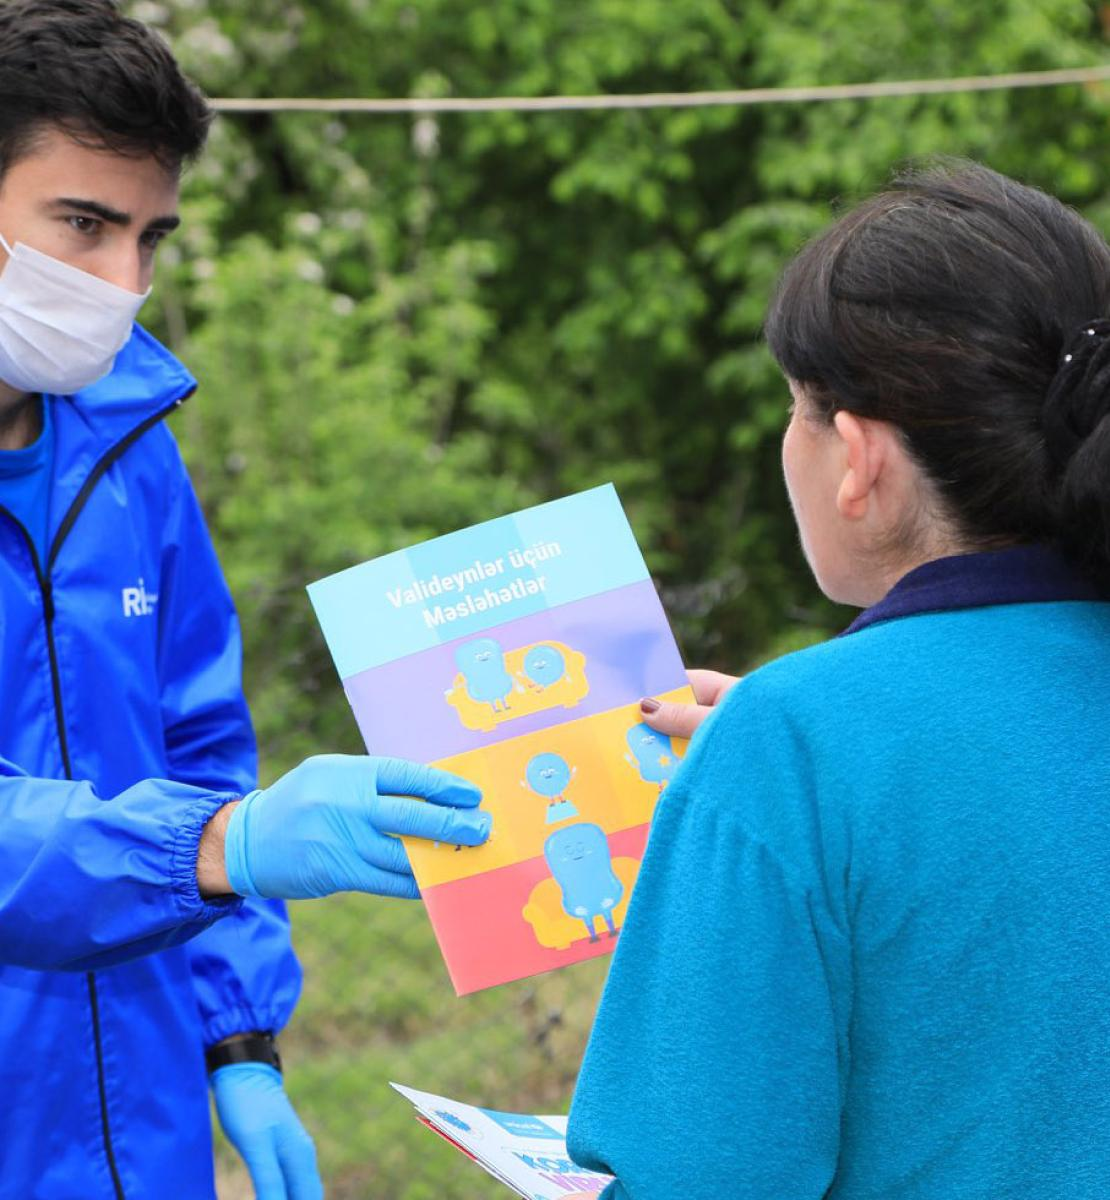 Dedicated volunteers provide COVID-19 awareness-raising material to help the community prevent the spread of the virus/